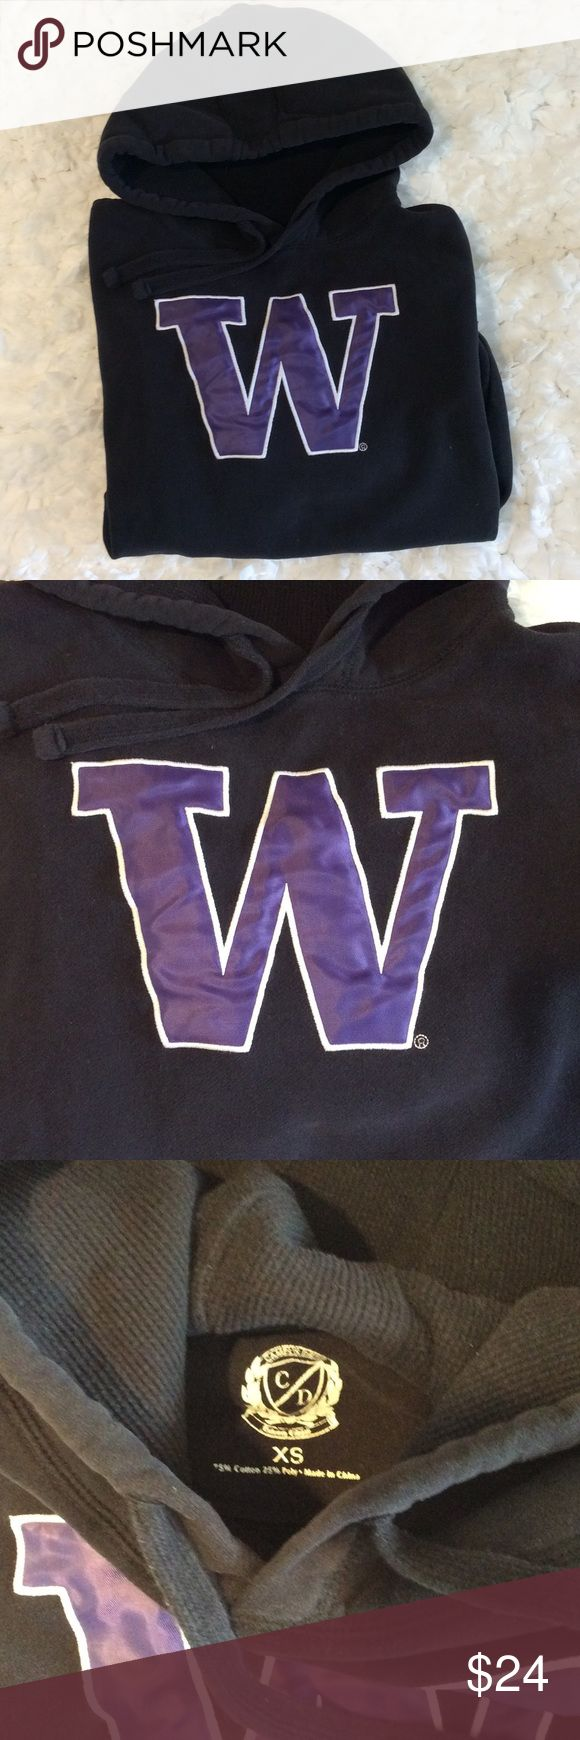 University of Washington Women's Hoodie U of W Huskies high quality black hoodie. Sweatshirt material 75% Cotton, 25% Polyester. Purple W stitched on to front of pull over hoodie. Love it but I have too many. Want it to find someone who will love it too. Women's XS and true to size.  Would also fit a youth Large. Tops Sweatshirts & Hoodies